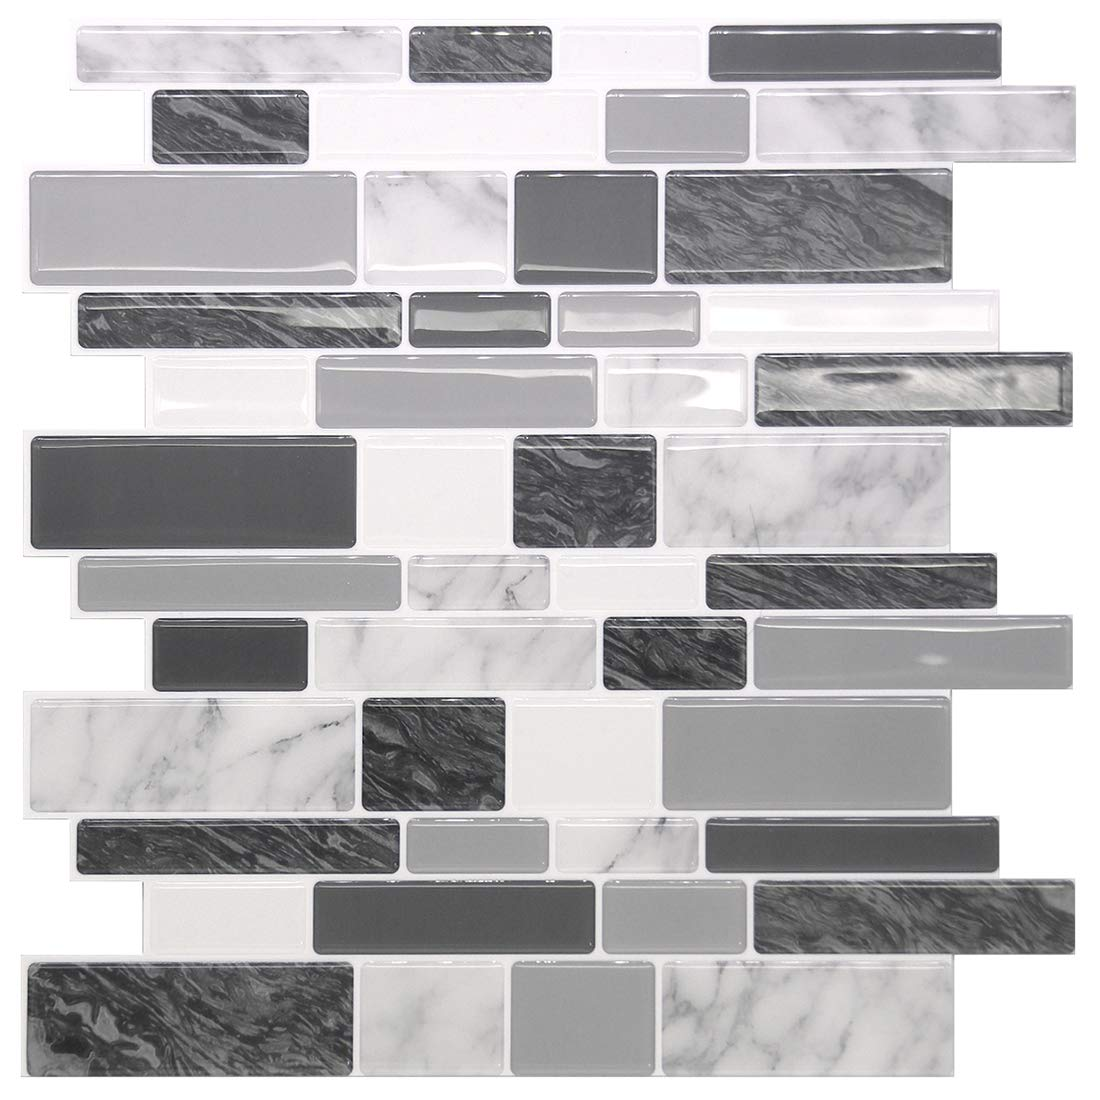 STICKGOO Marble Look Peel and Stick Tile Backsplash, Kitchen Backsplash Peel and Stick, Decorative Self Adhesive Backsplash Tiles in Grey (Pack of 1, Thicker Design)